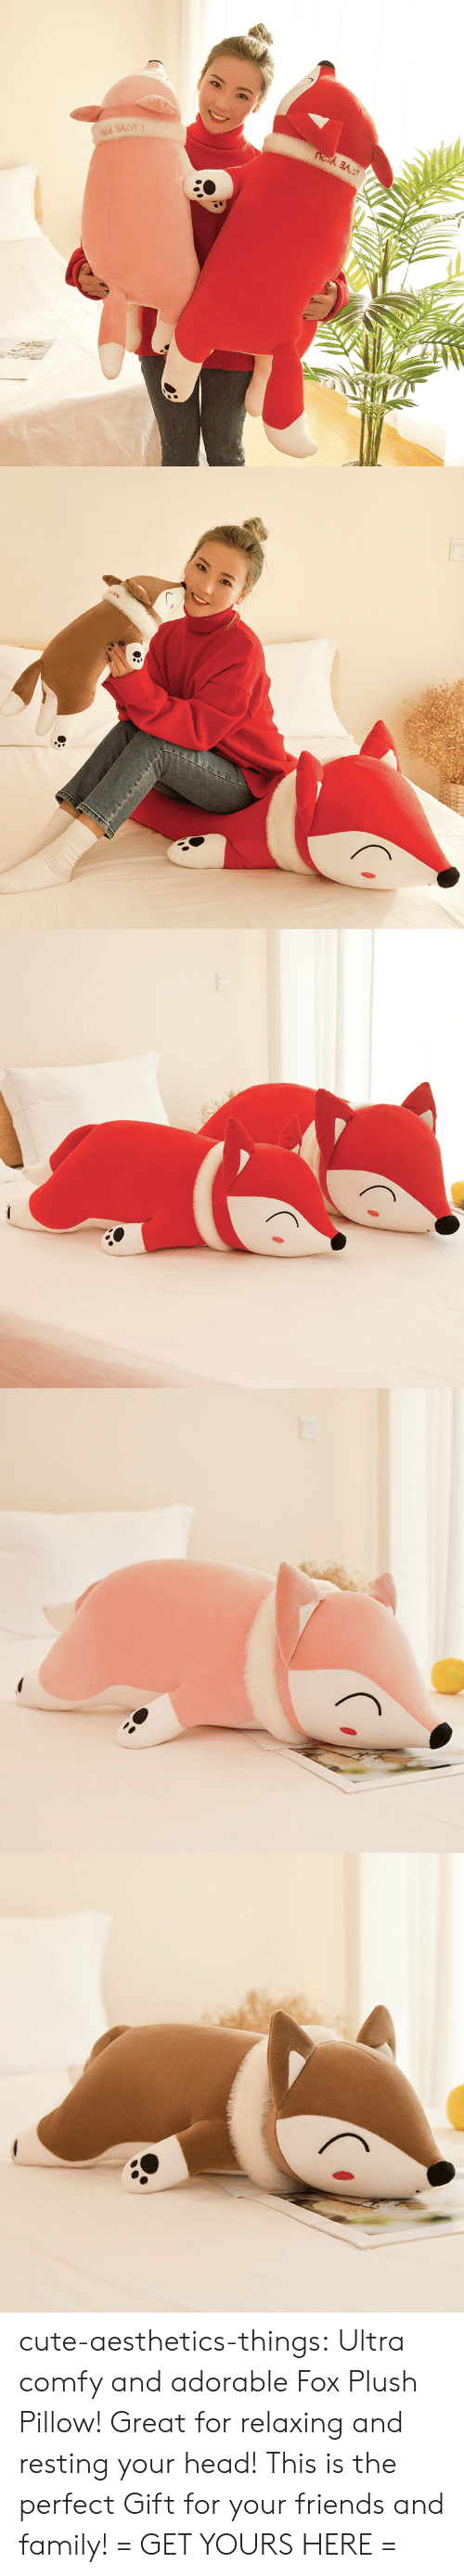 Cute, Family, and Friends: cute-aesthetics-things: Ultra comfy and adorable Fox Plush Pillow! Great for relaxing and resting your head! This is the perfect Gift for your friends and family! = GET YOURS HERE =